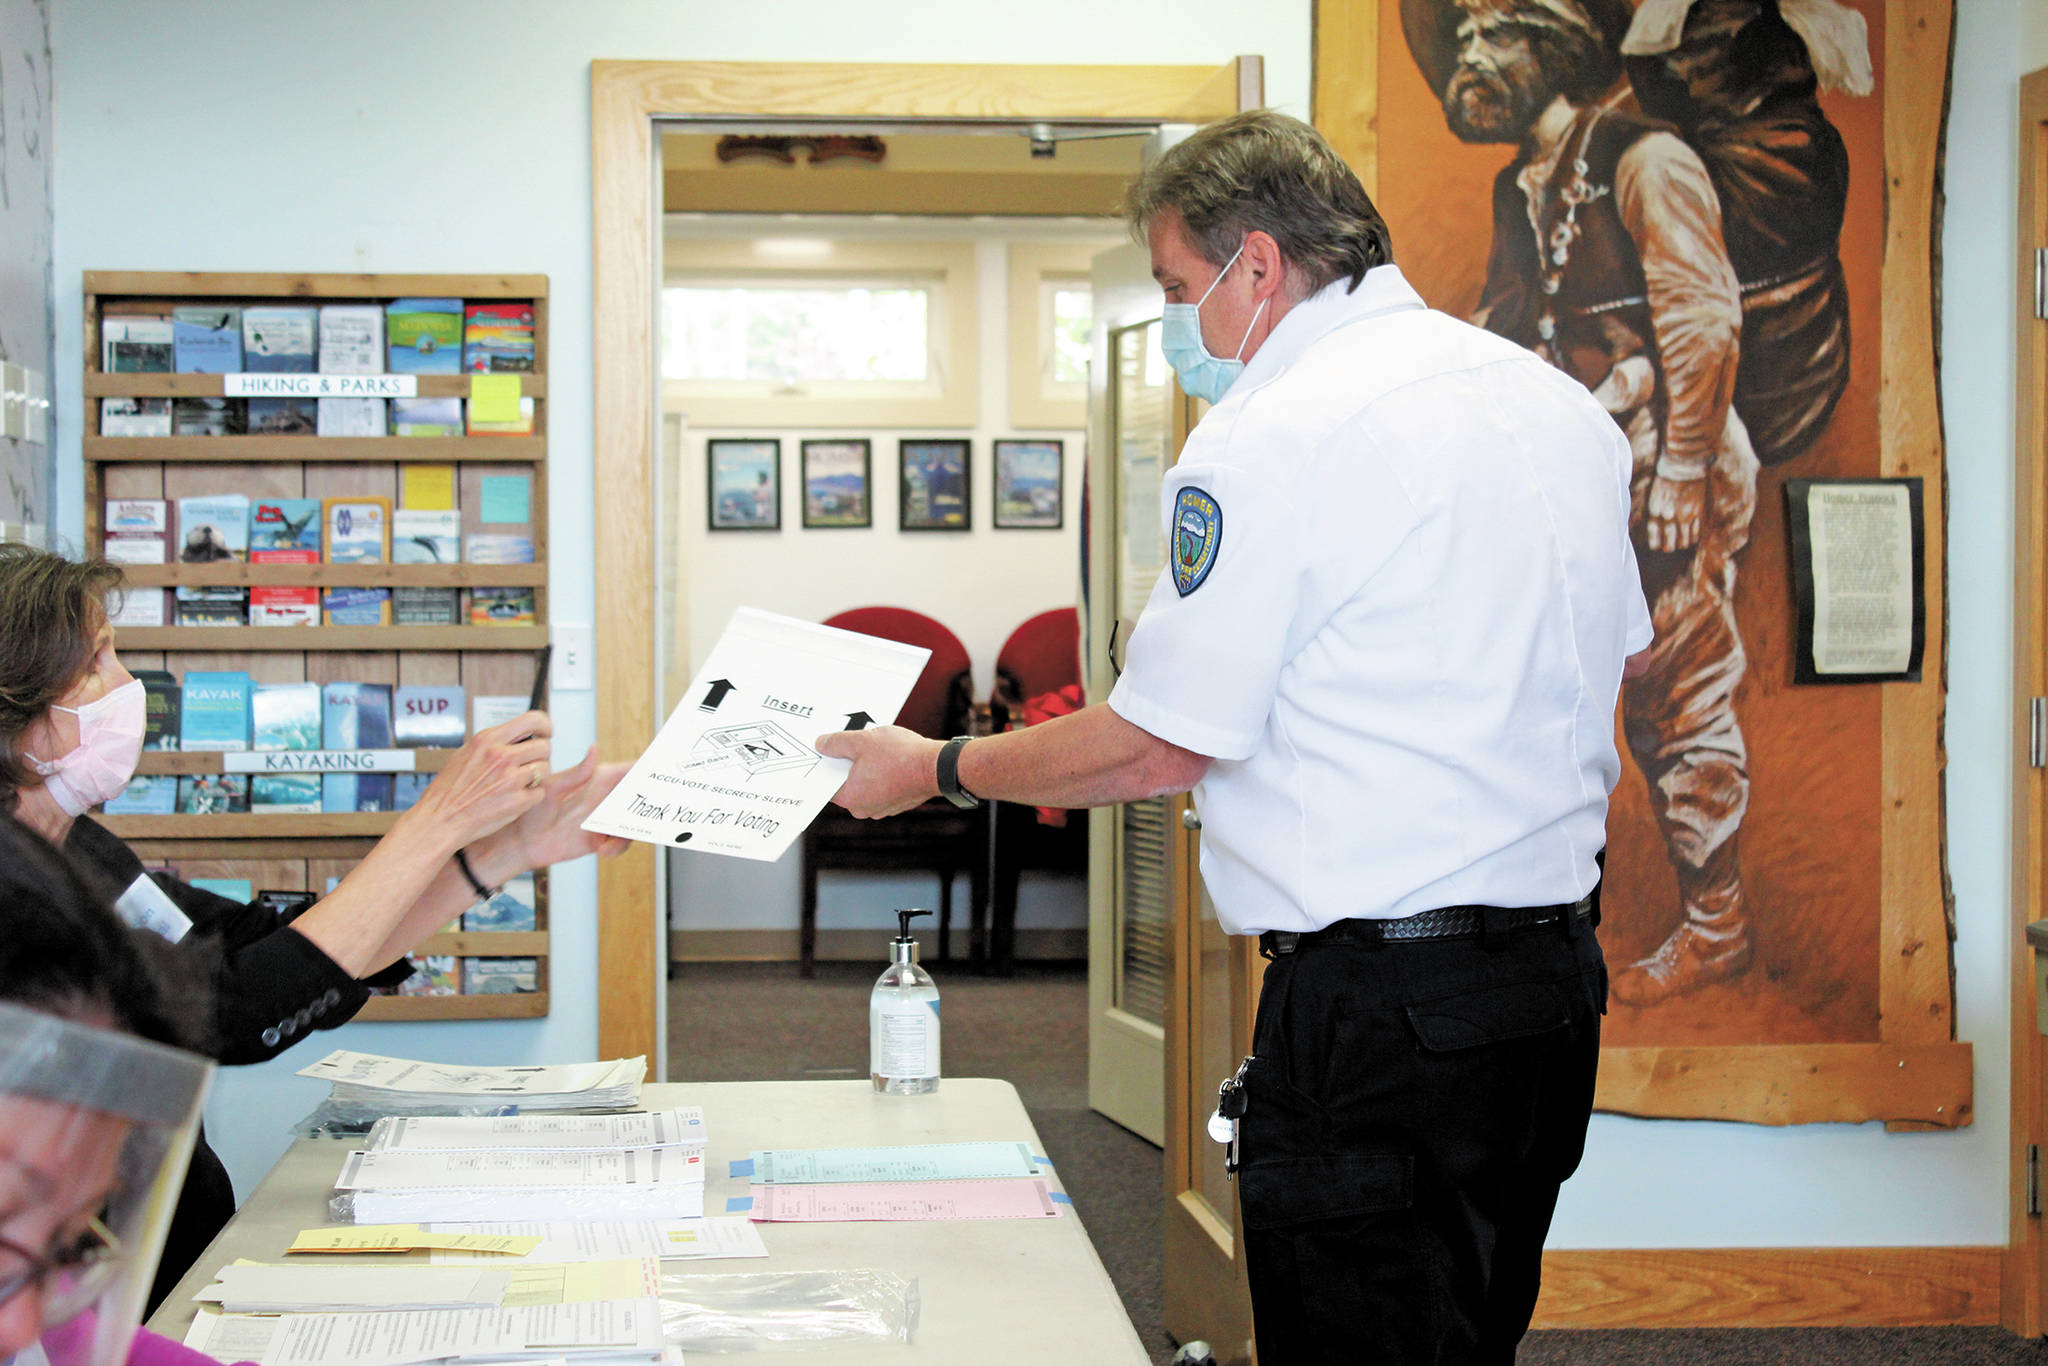 Homer Volunteer Fire Department Chief Mark Kirko collects his ballot during the Primary Election on Tuesday, Aug. 18, 2020 at the Homer Chamber of Commerce and Visitor Center polling location in Homer, Alaska. (Photo by Megan Pacer/Homer News)